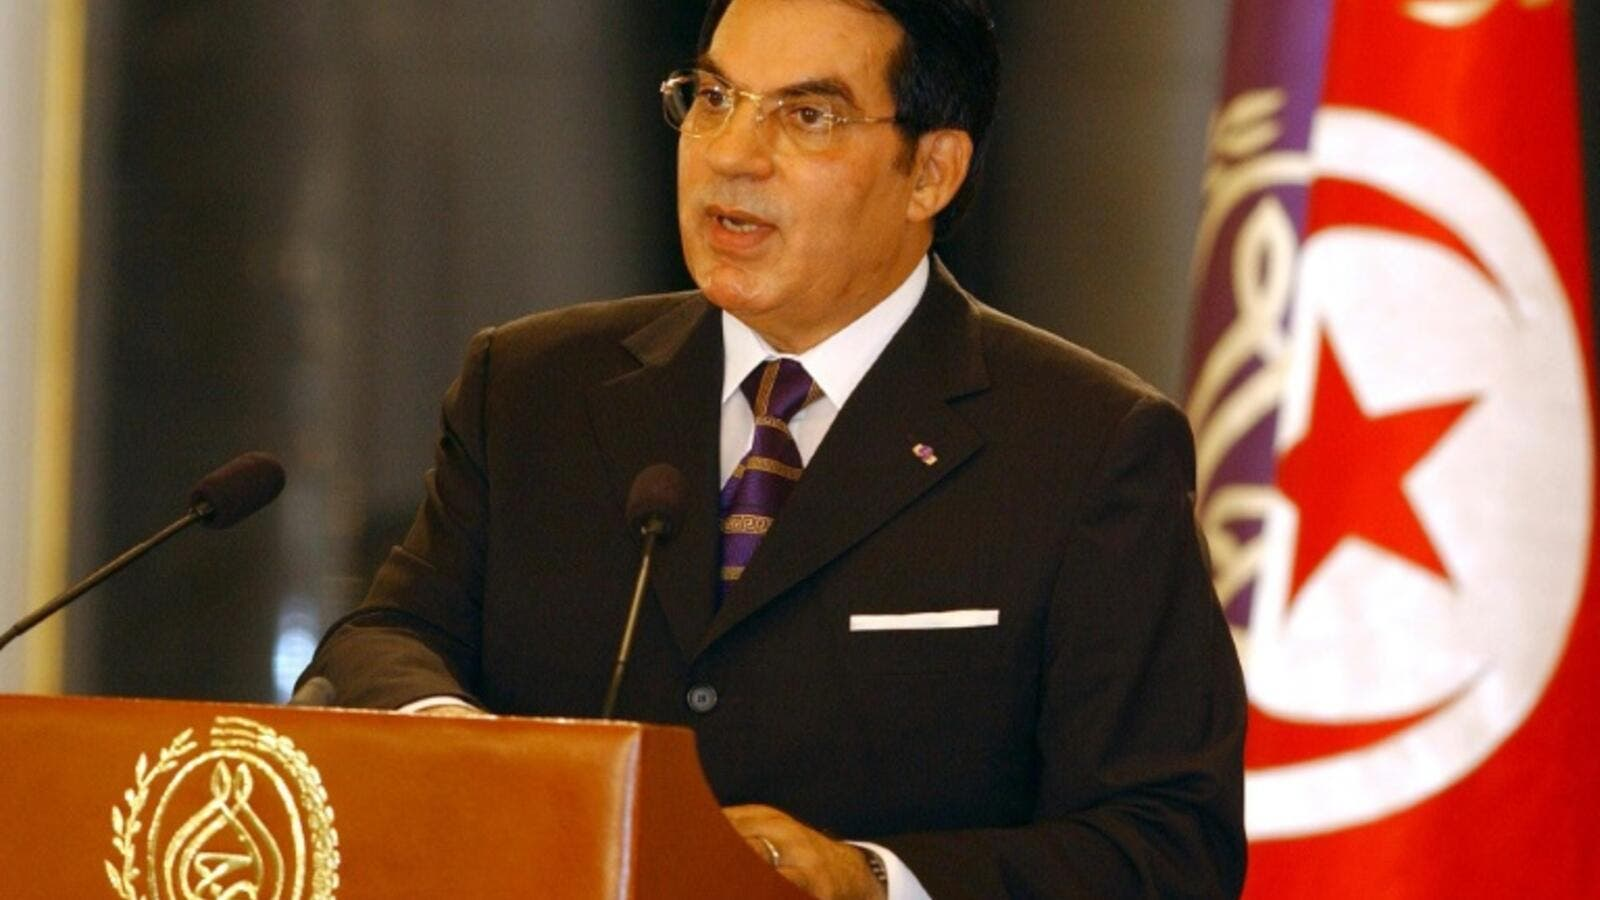 Ben Ali, who ruled Tunisia with an iron fist for 23 years until he was deposed in 2011, has since been convicted in several cases, including for corruption, and was also sentenced to life imprisonment over the bloody crackdown on demonstrations during the uprising against him, in which more than 300 people were killed. (File/AFP)